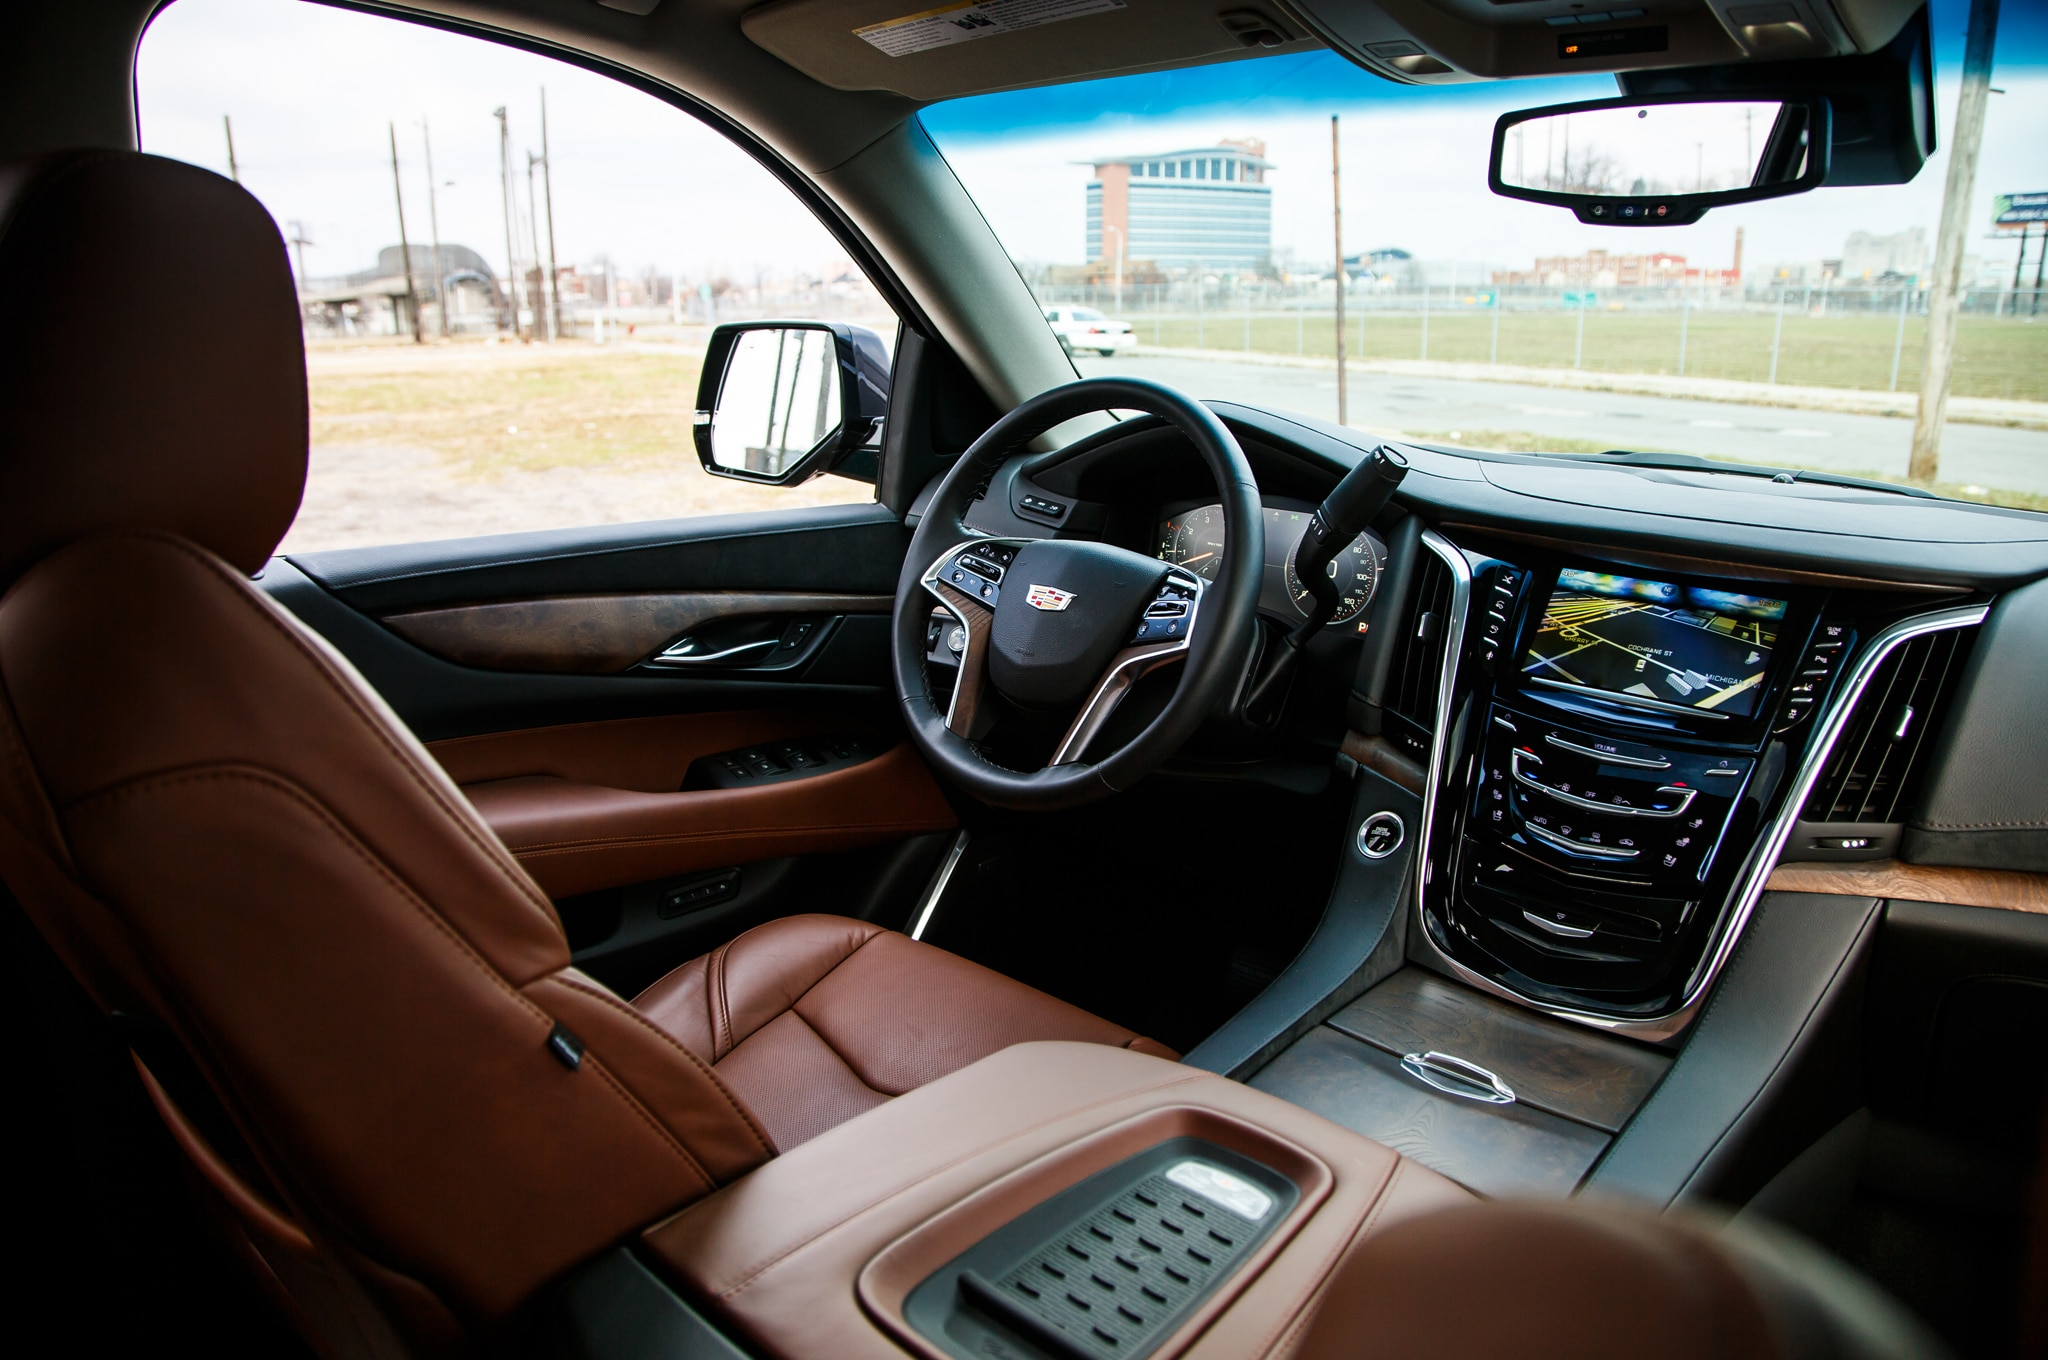 2015 Cadillac Escalade Vs 2015 Lincoln Navigator Comparison